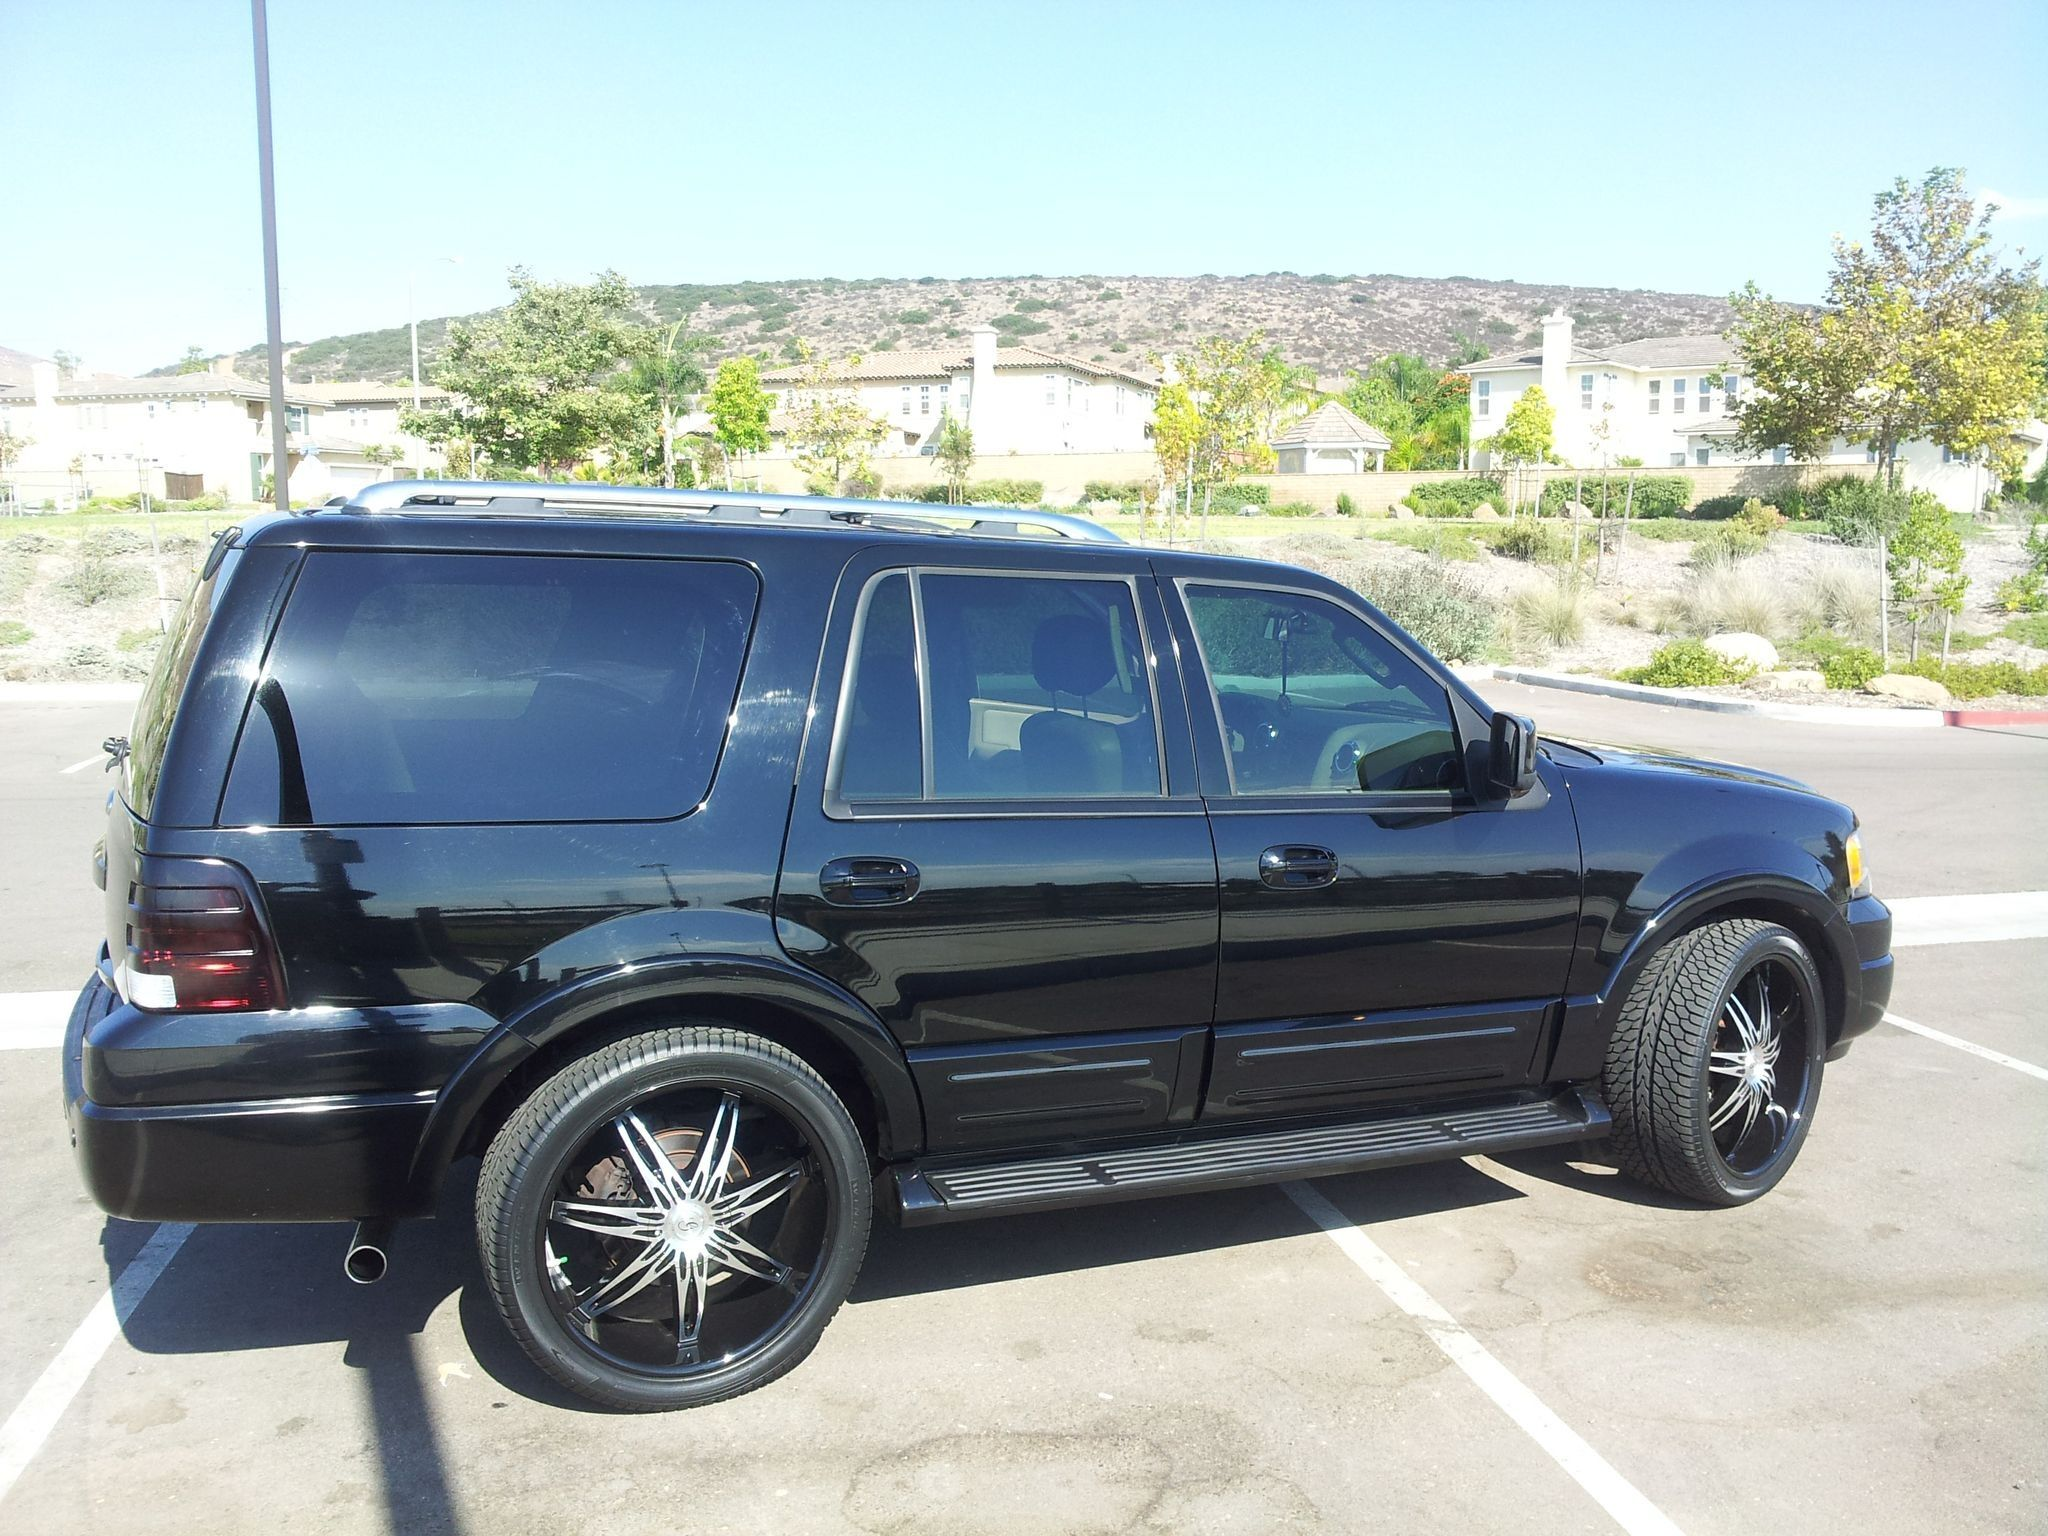 Expedition On 24 Giovanni S Ford Expedition Expedition Ford